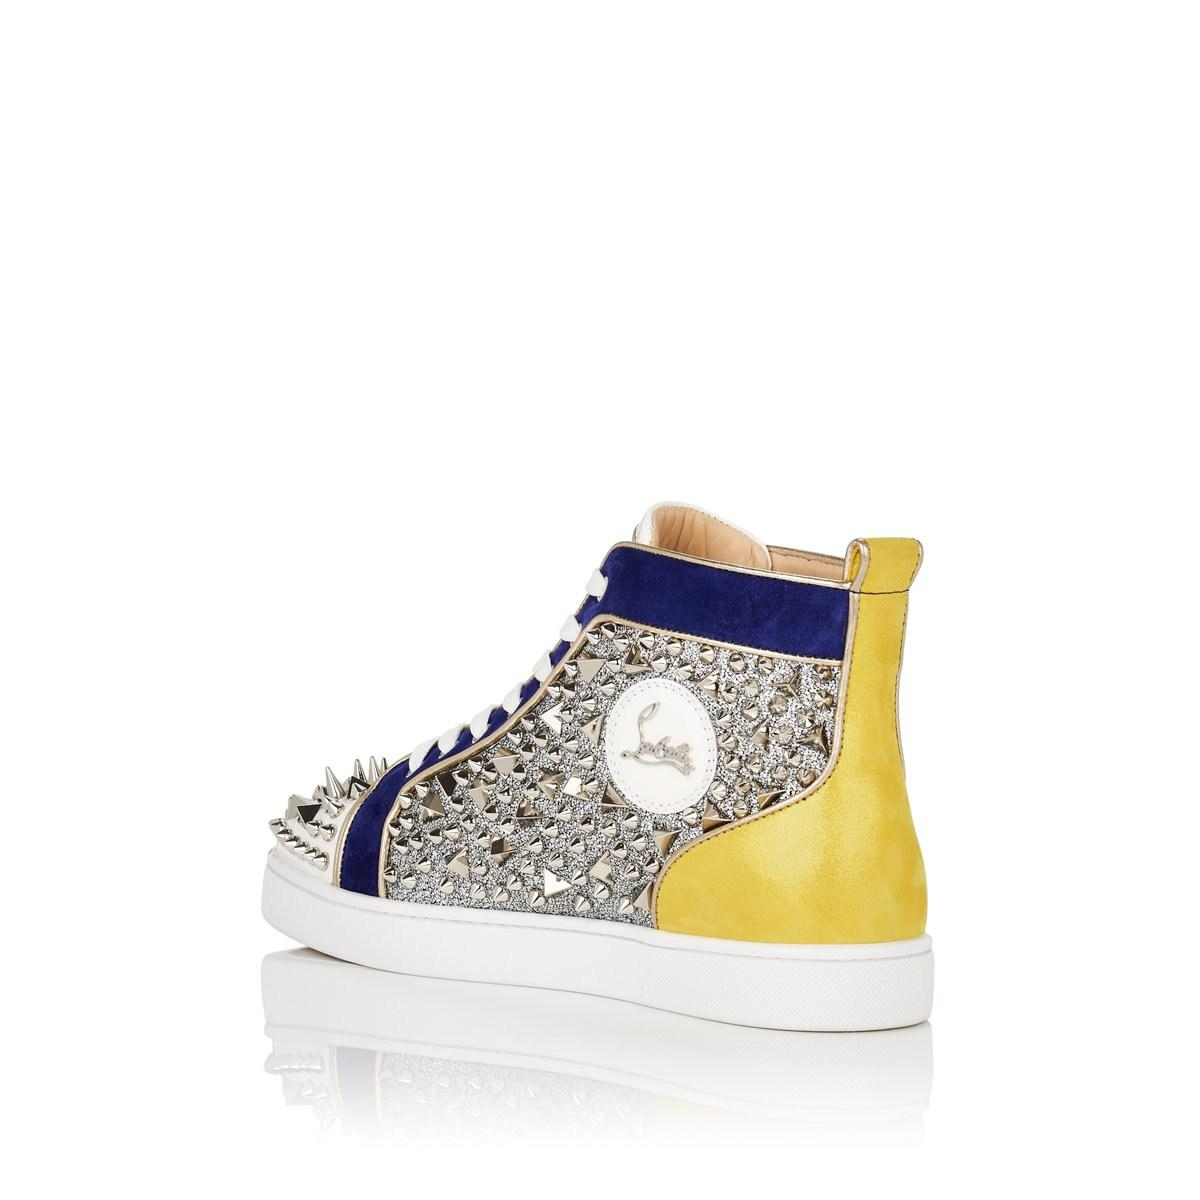 f3baf35b1d86 Christian Louboutin - Blue No Limit Spiked Leather   Suede Sneakers for Men  - Lyst. View fullscreen